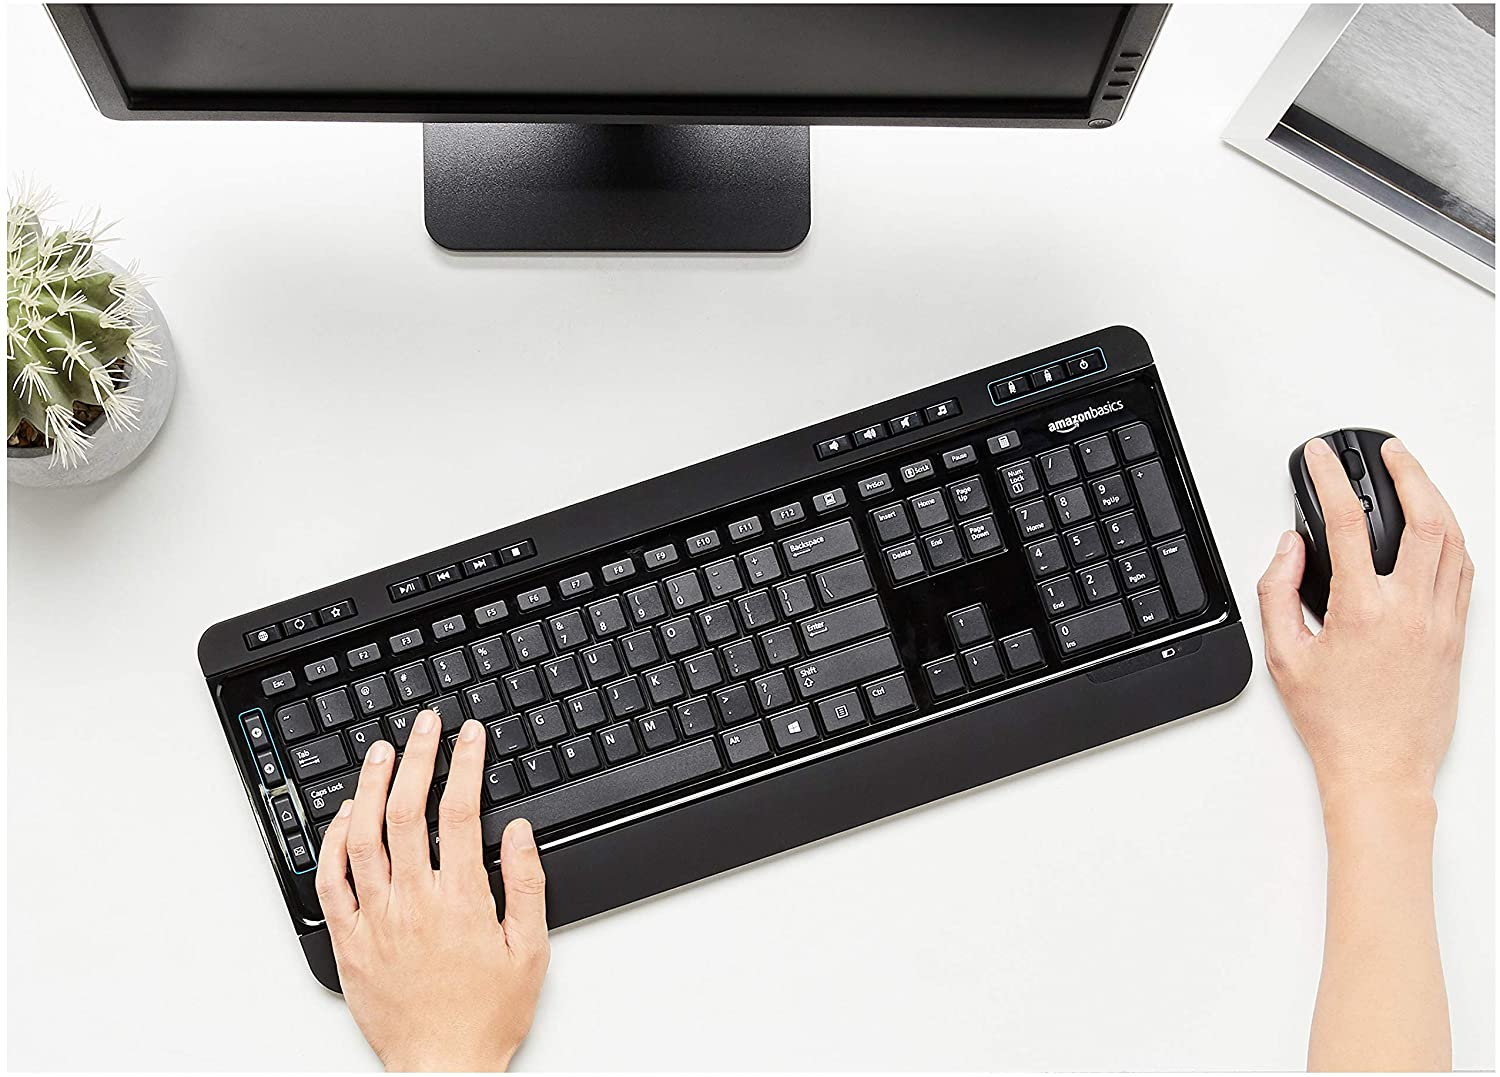 Wireless Computer Mouse and Keyboard Combo 7